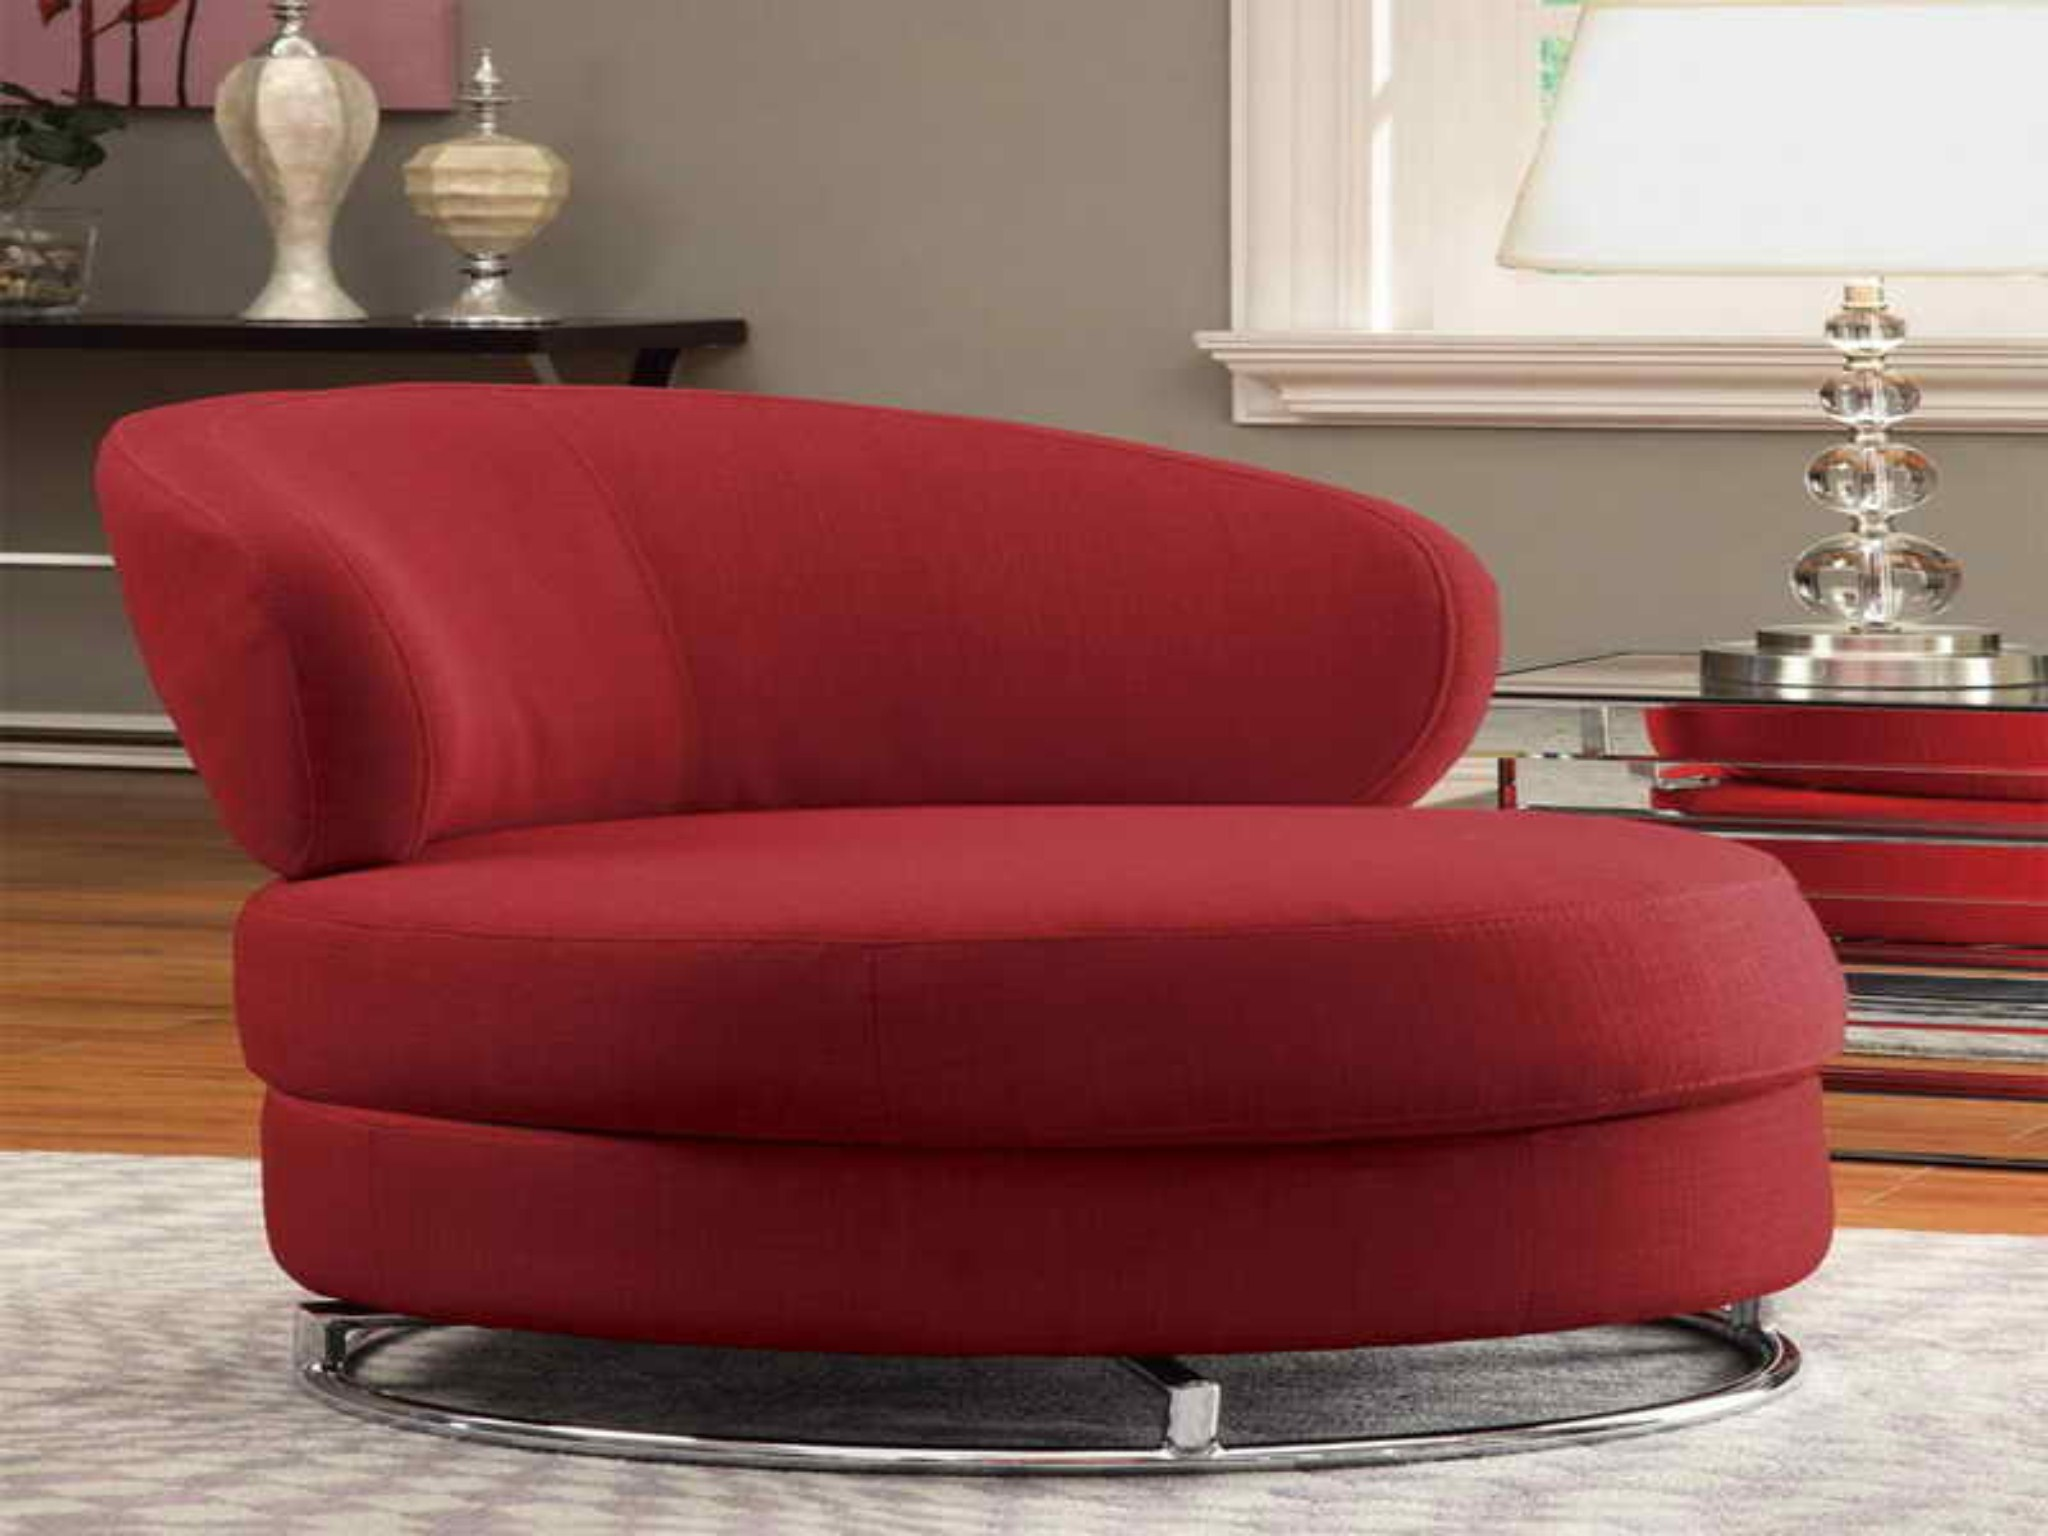 Awesome Living Area With Red Sofa also Hug Table Lamp Shade